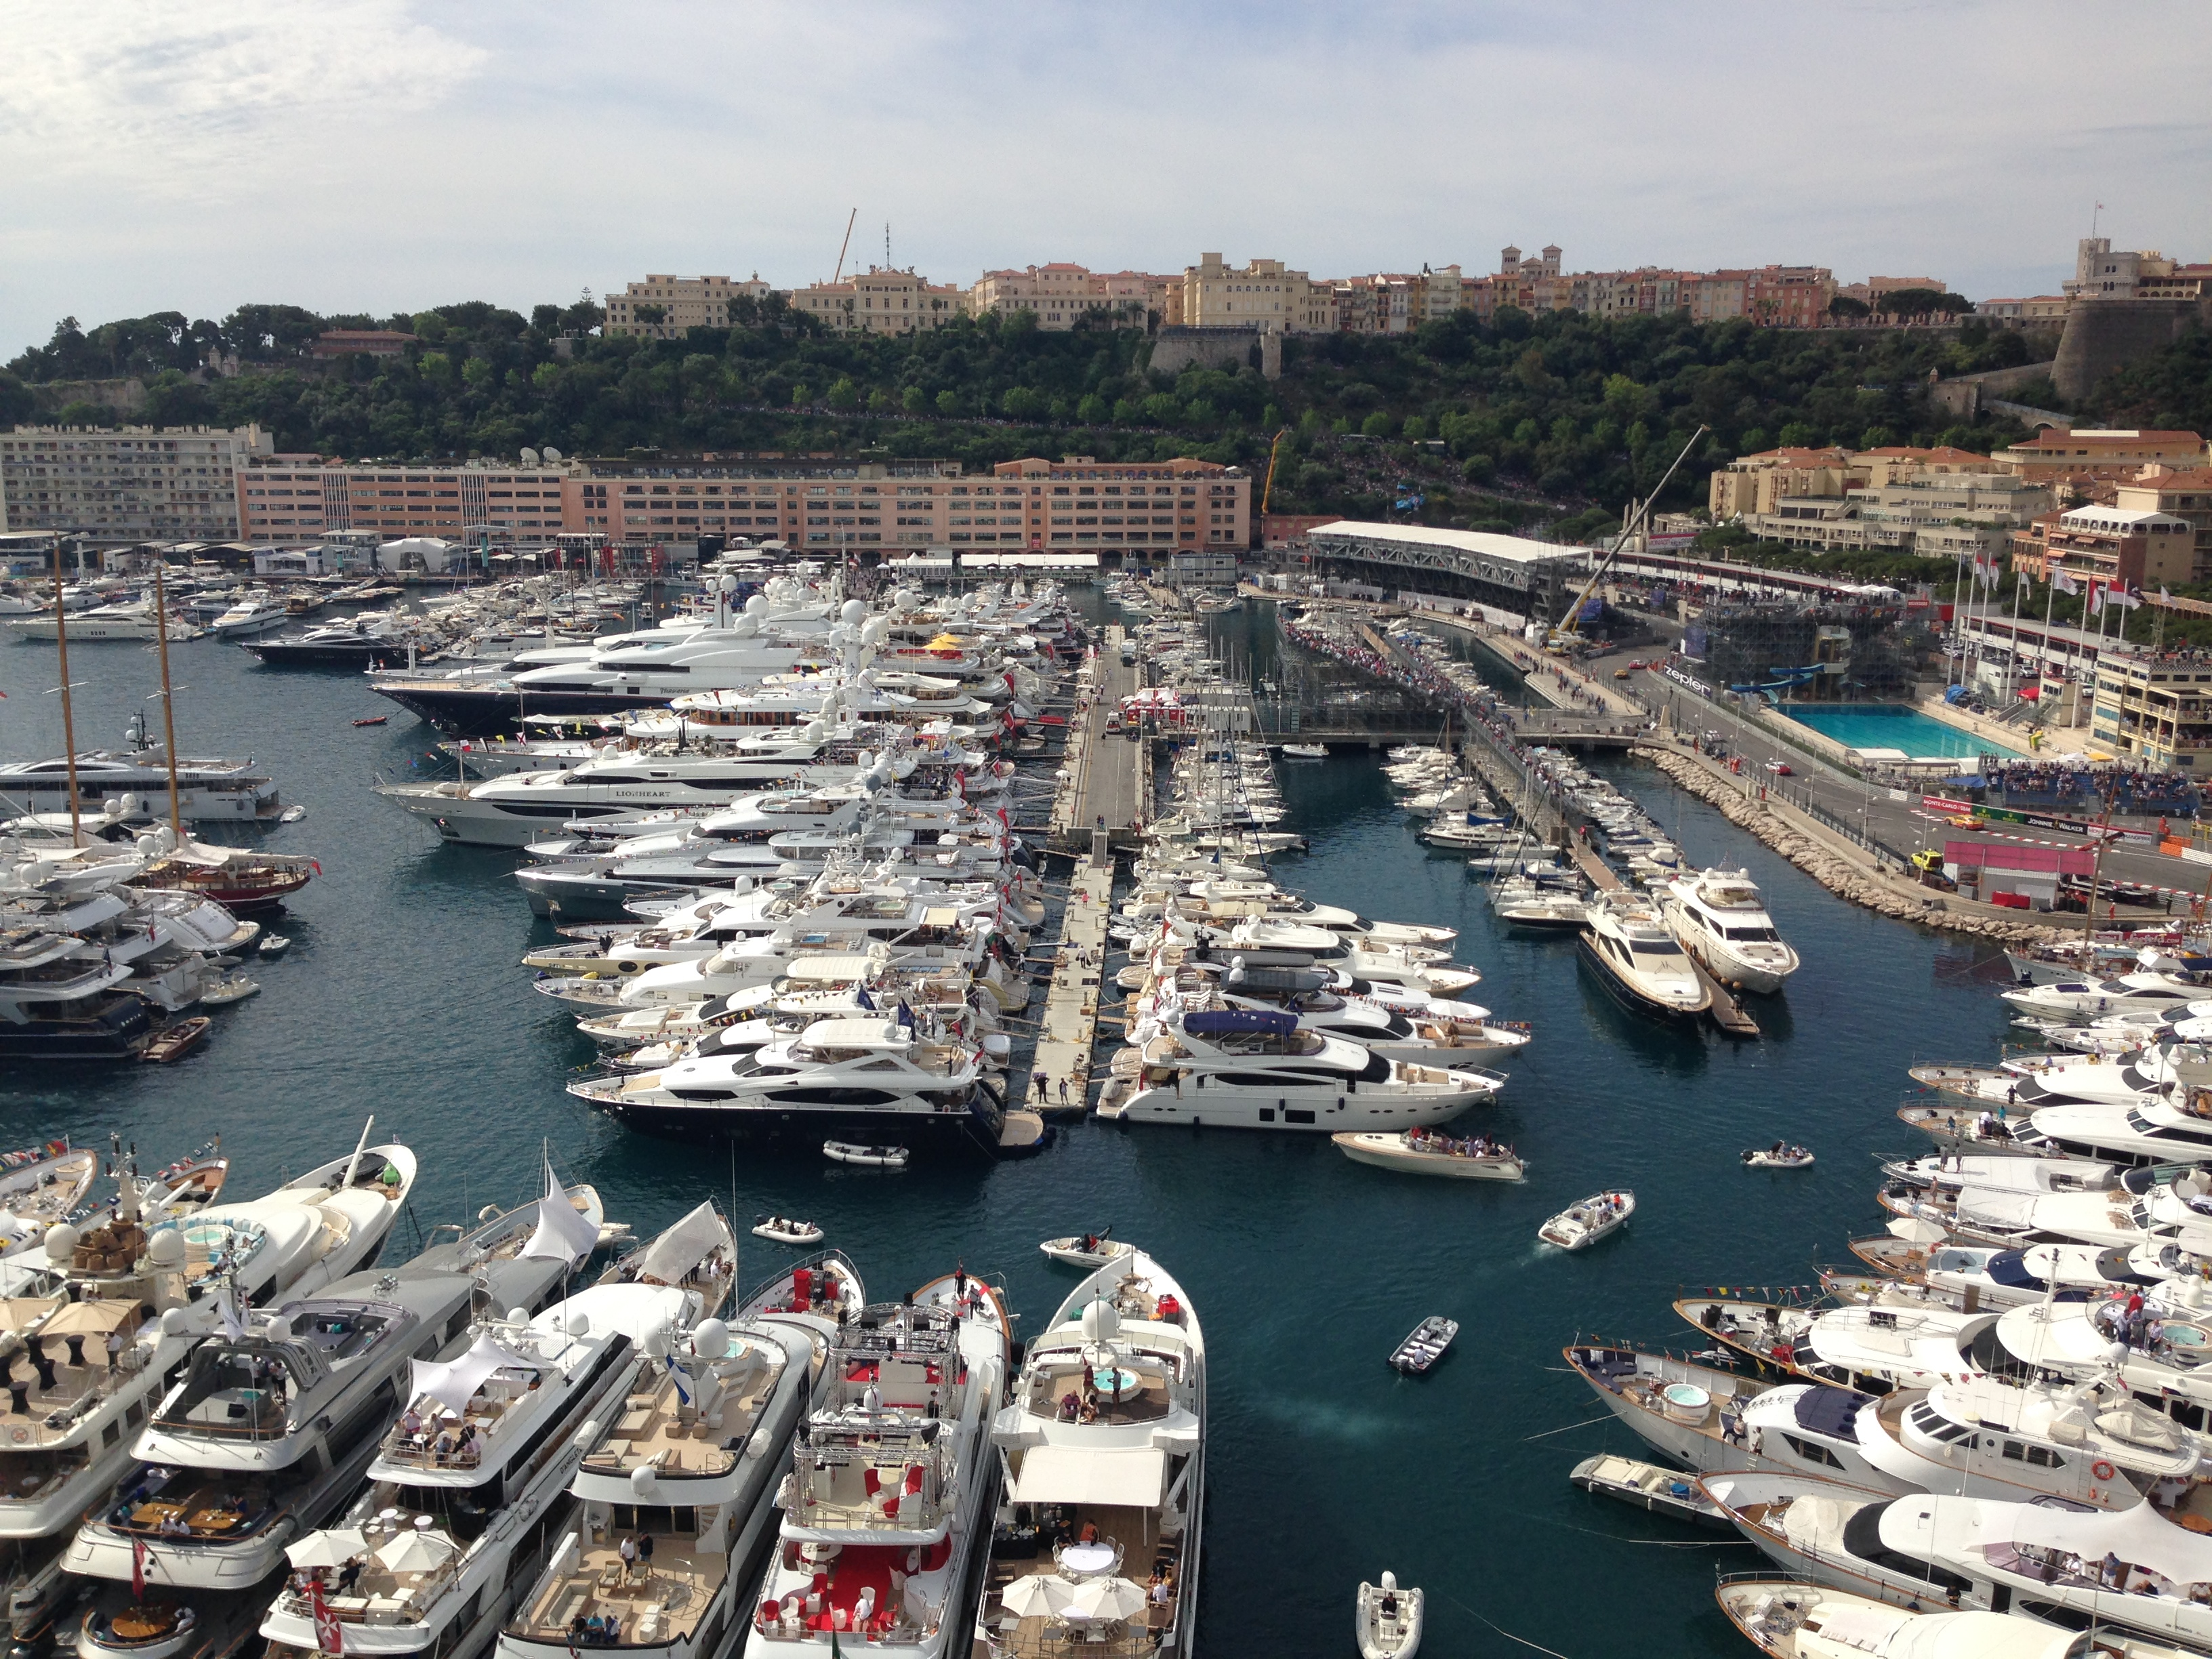 Superyachts in the marina